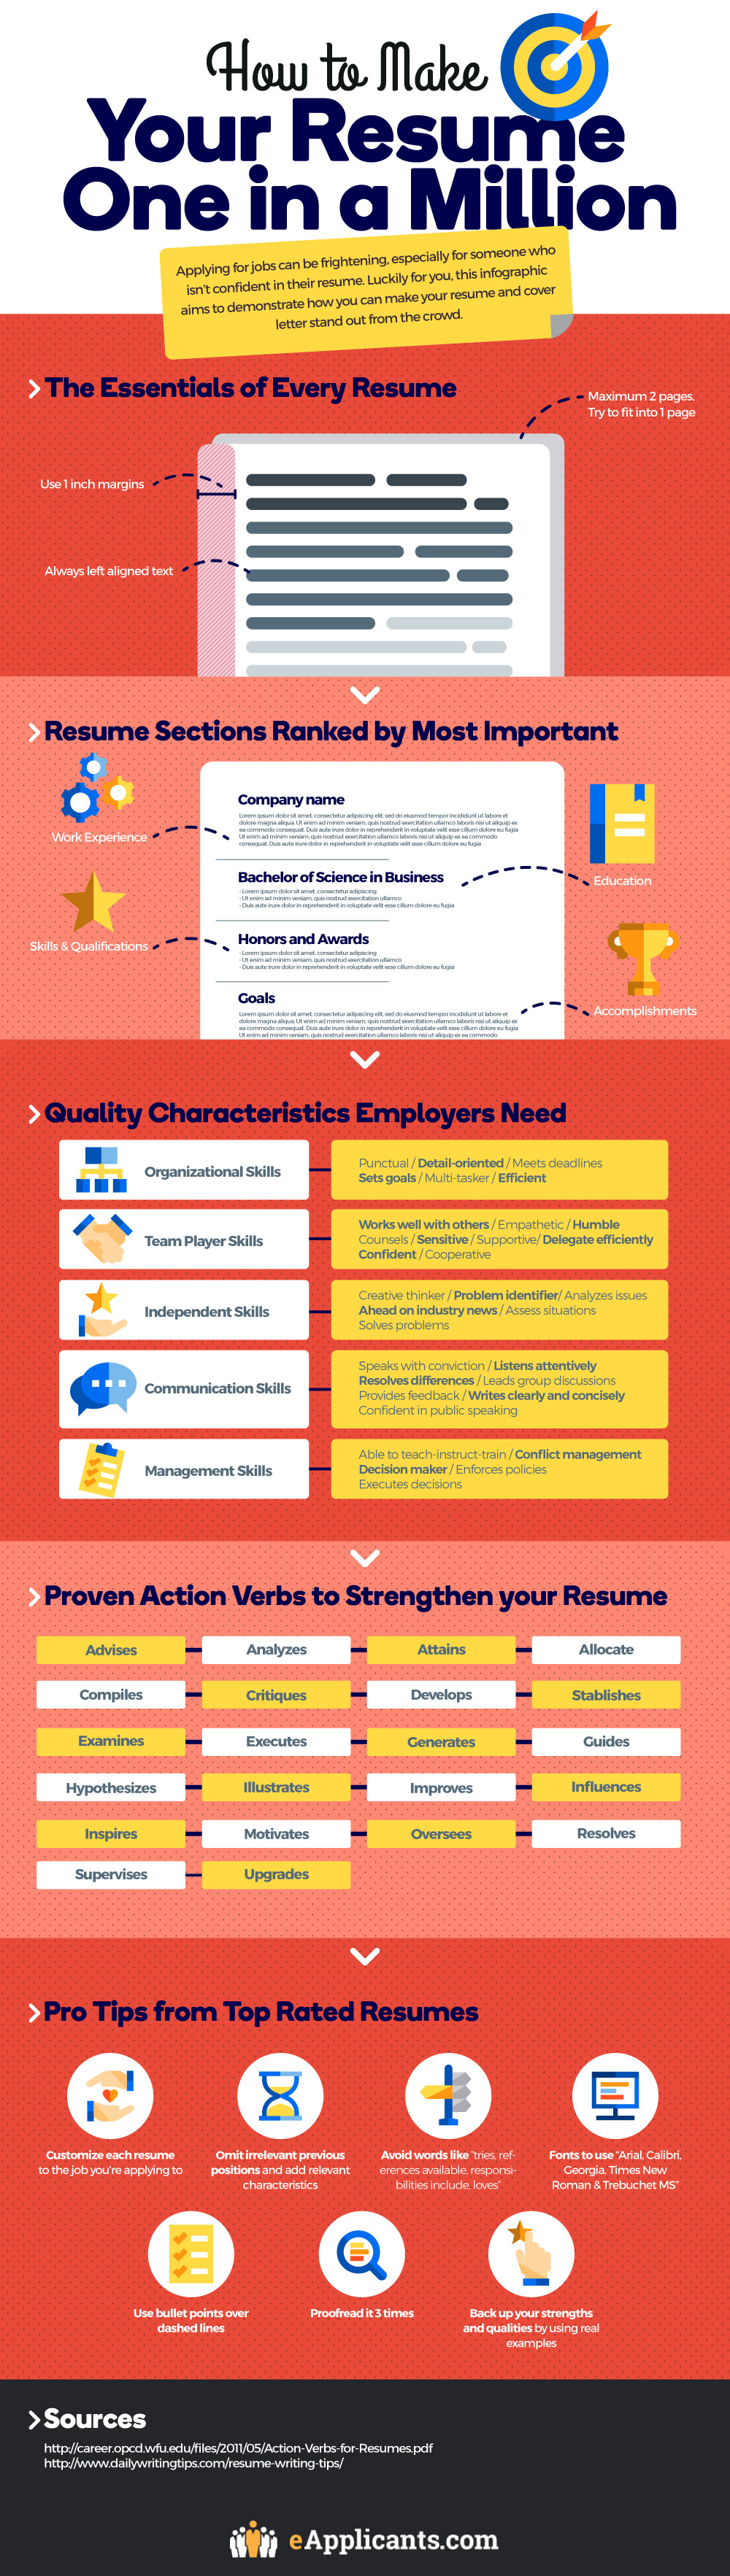 How to Craft the Perfect Resume that Stands Out in the Crowd - Infographic